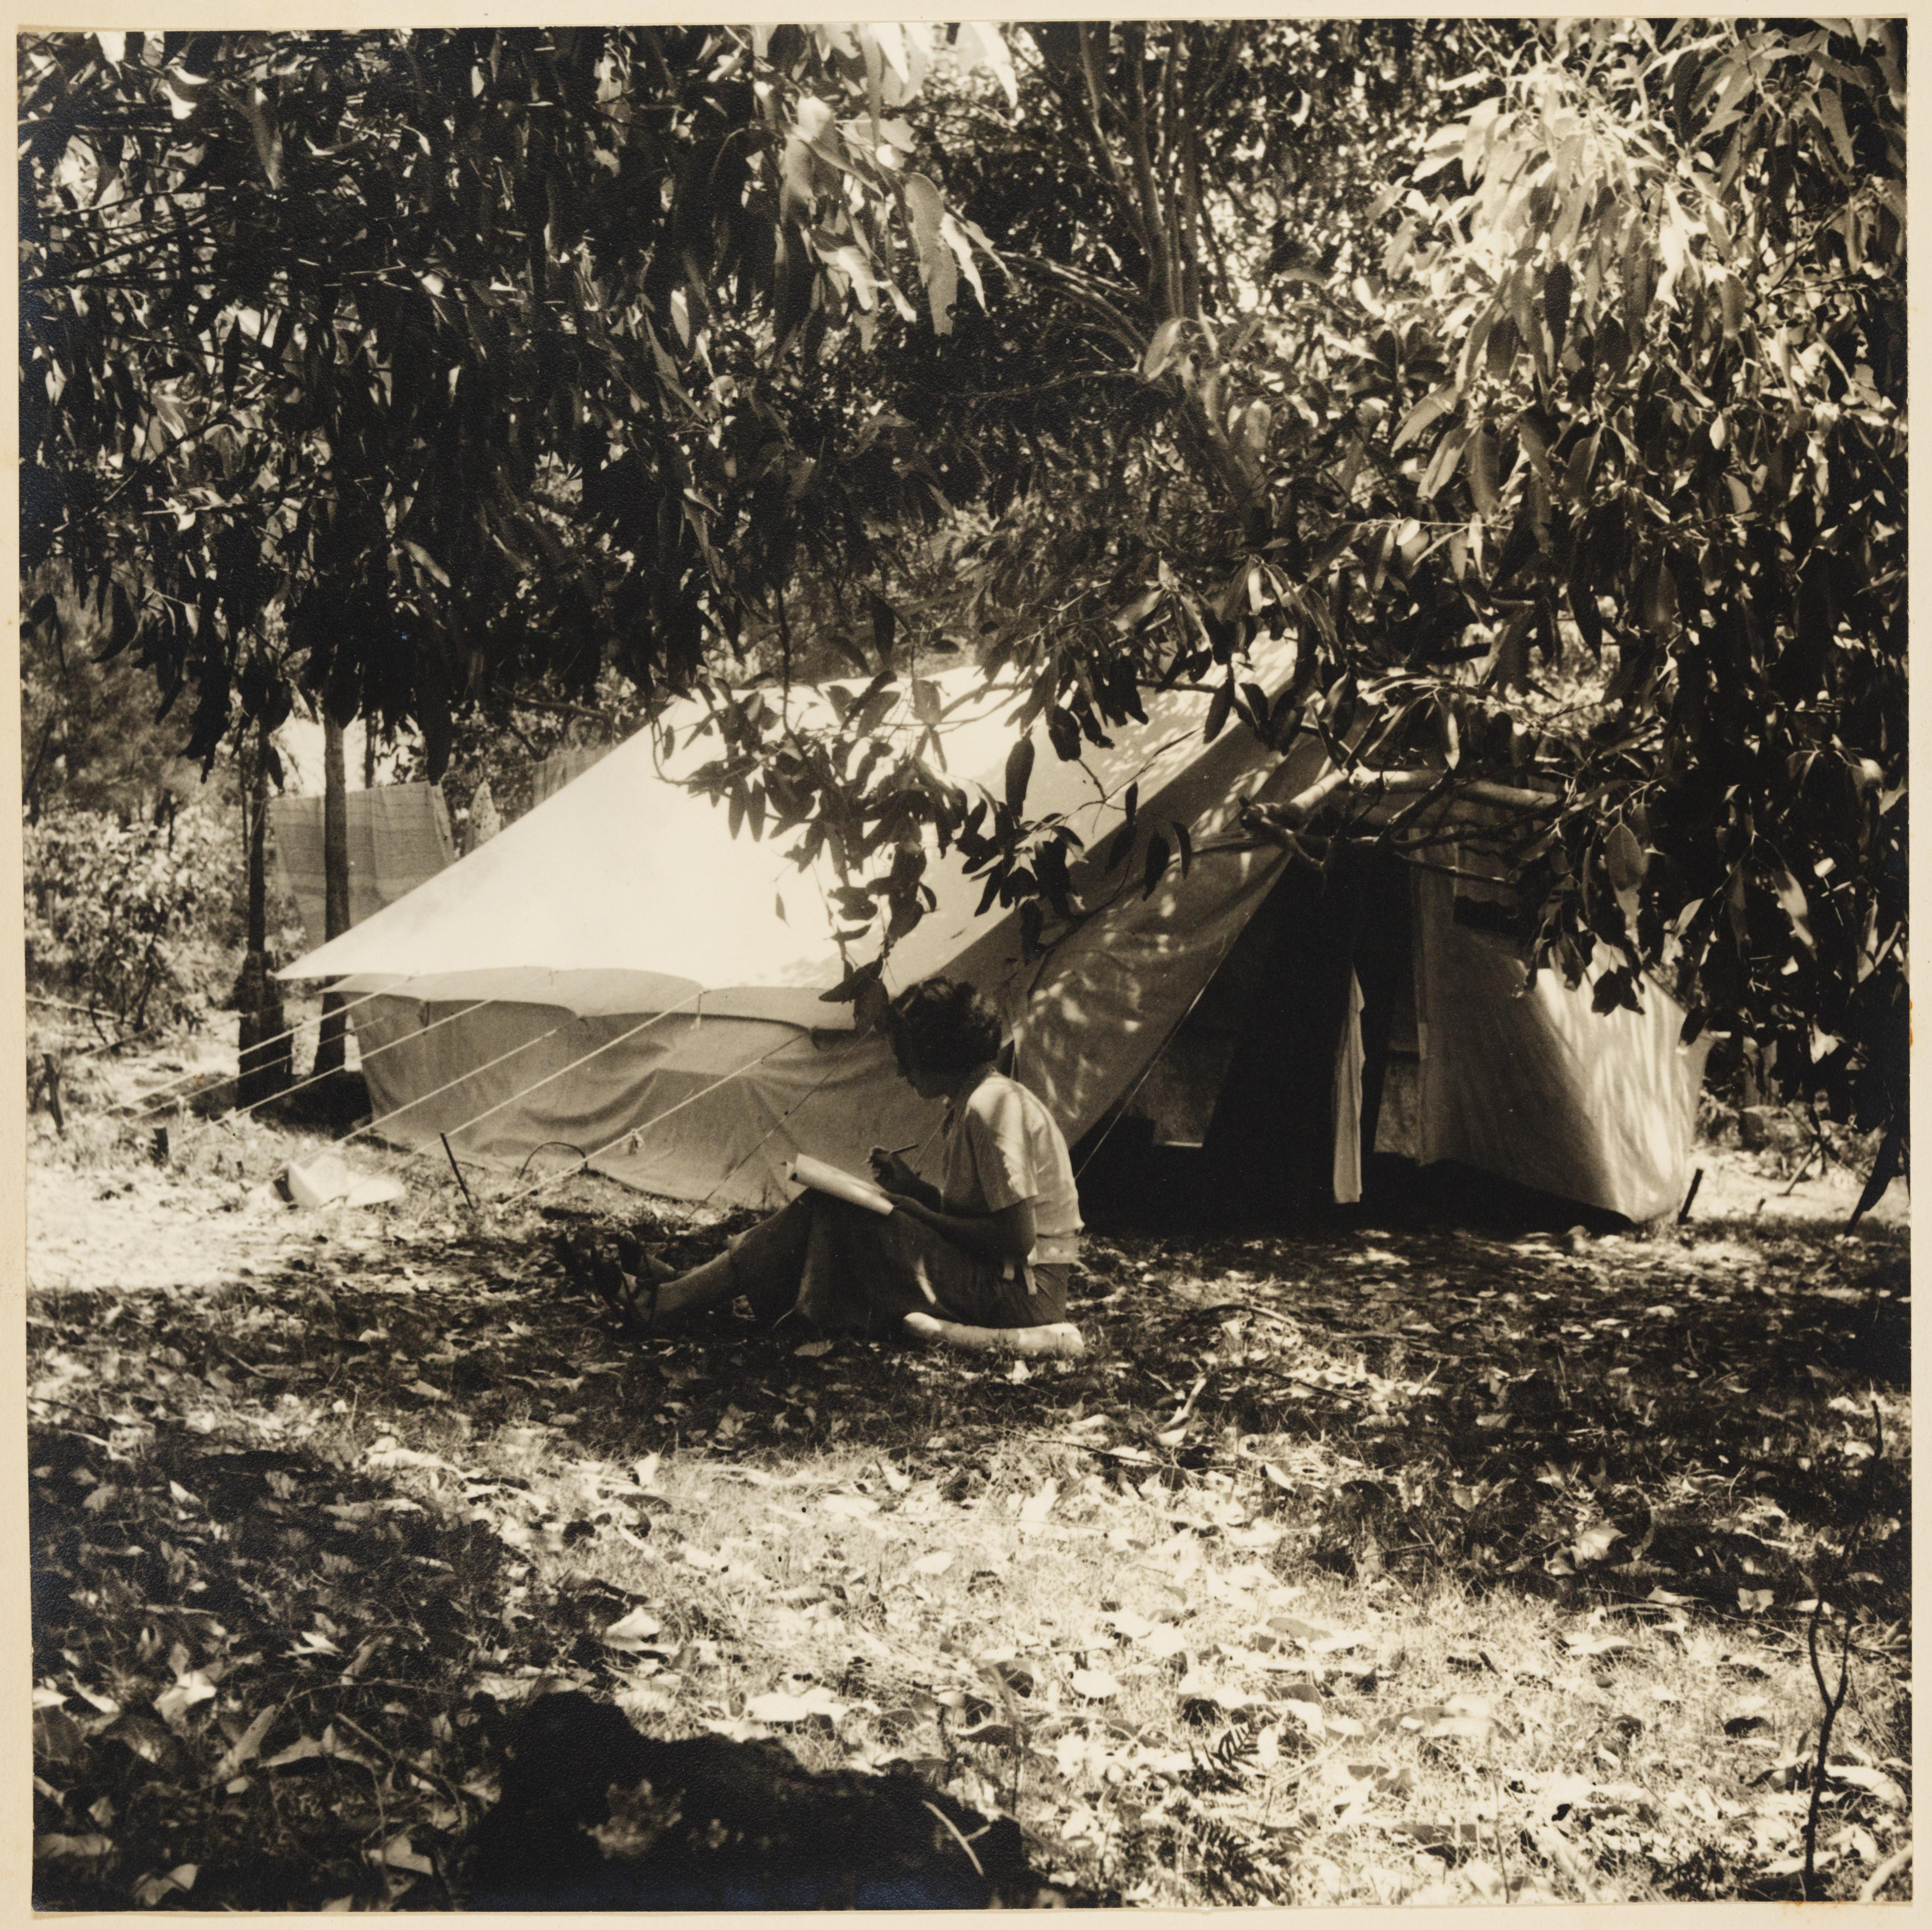 Una Dodd (?) by tent from Camping trips on Culburra Beach by Max Dupain and Olive Cotton